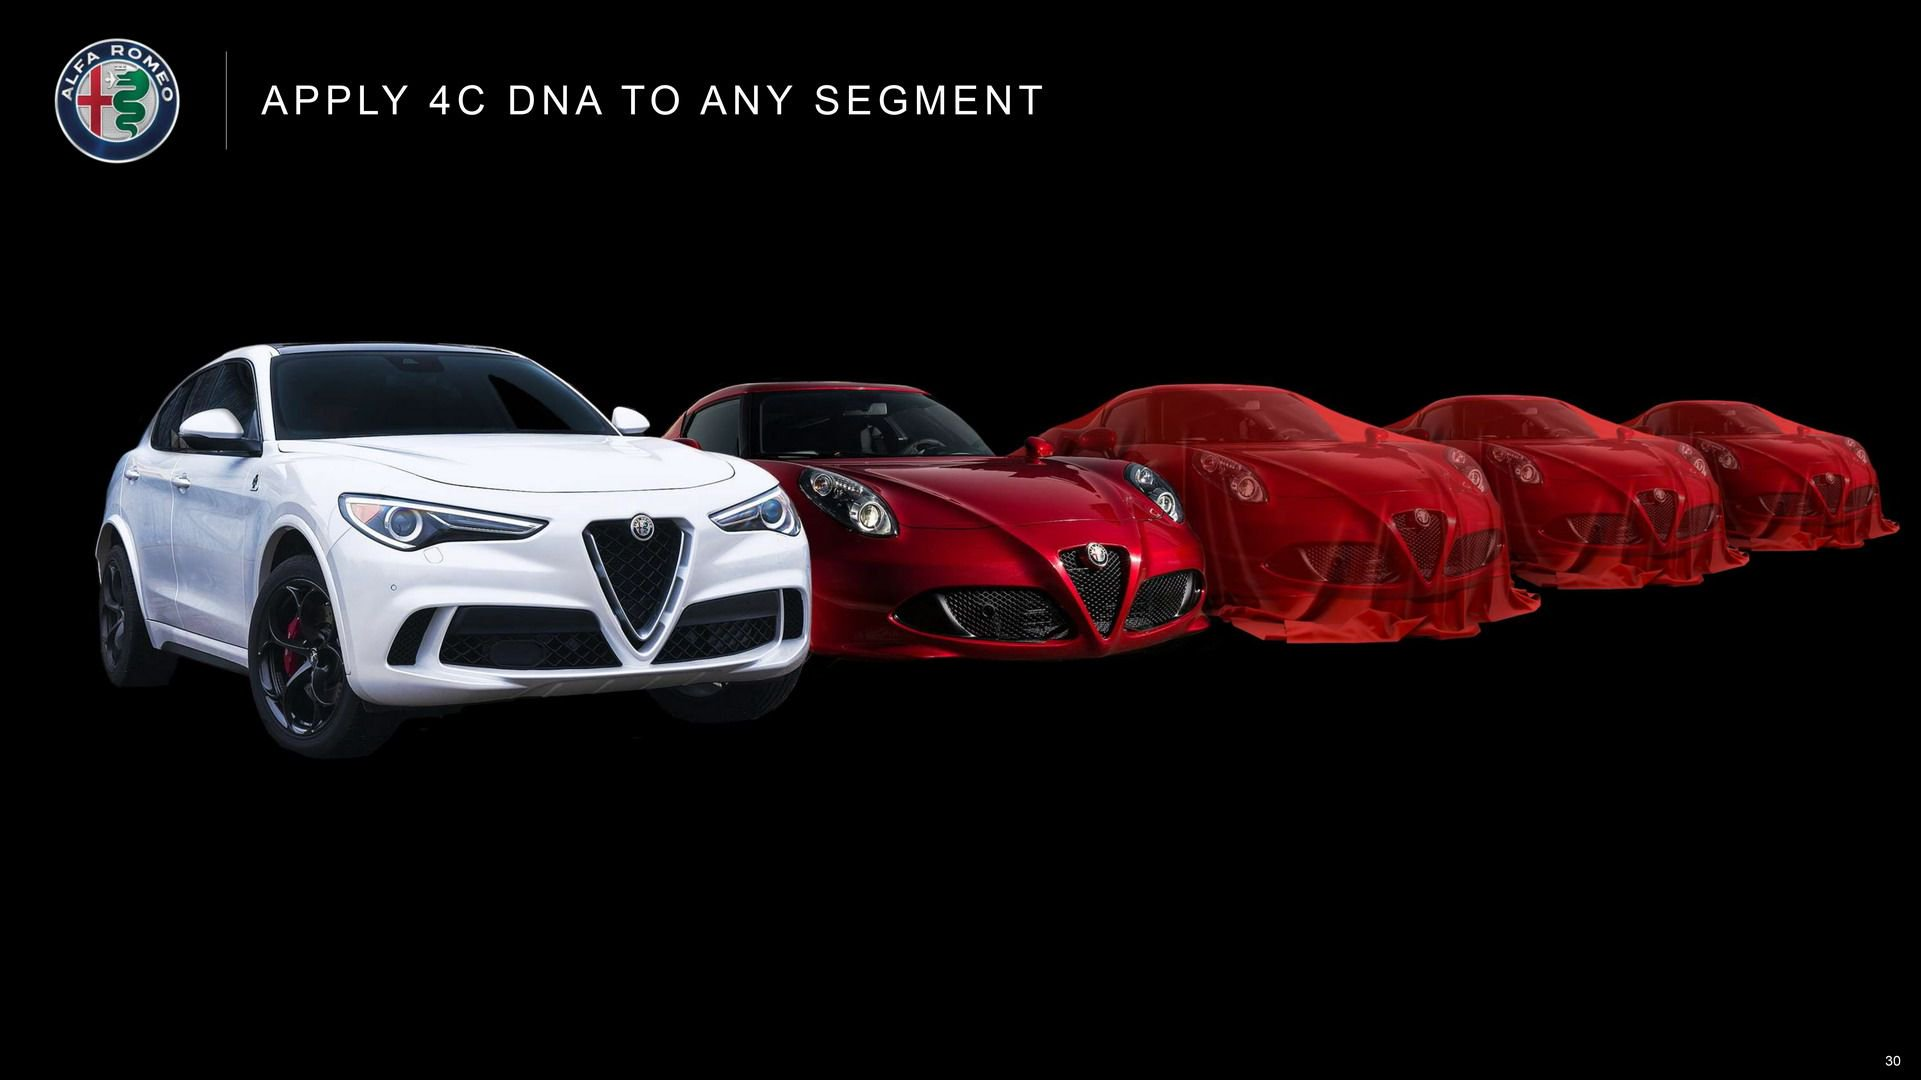 Alfa-Romeo-Product-Plan-30.jpg